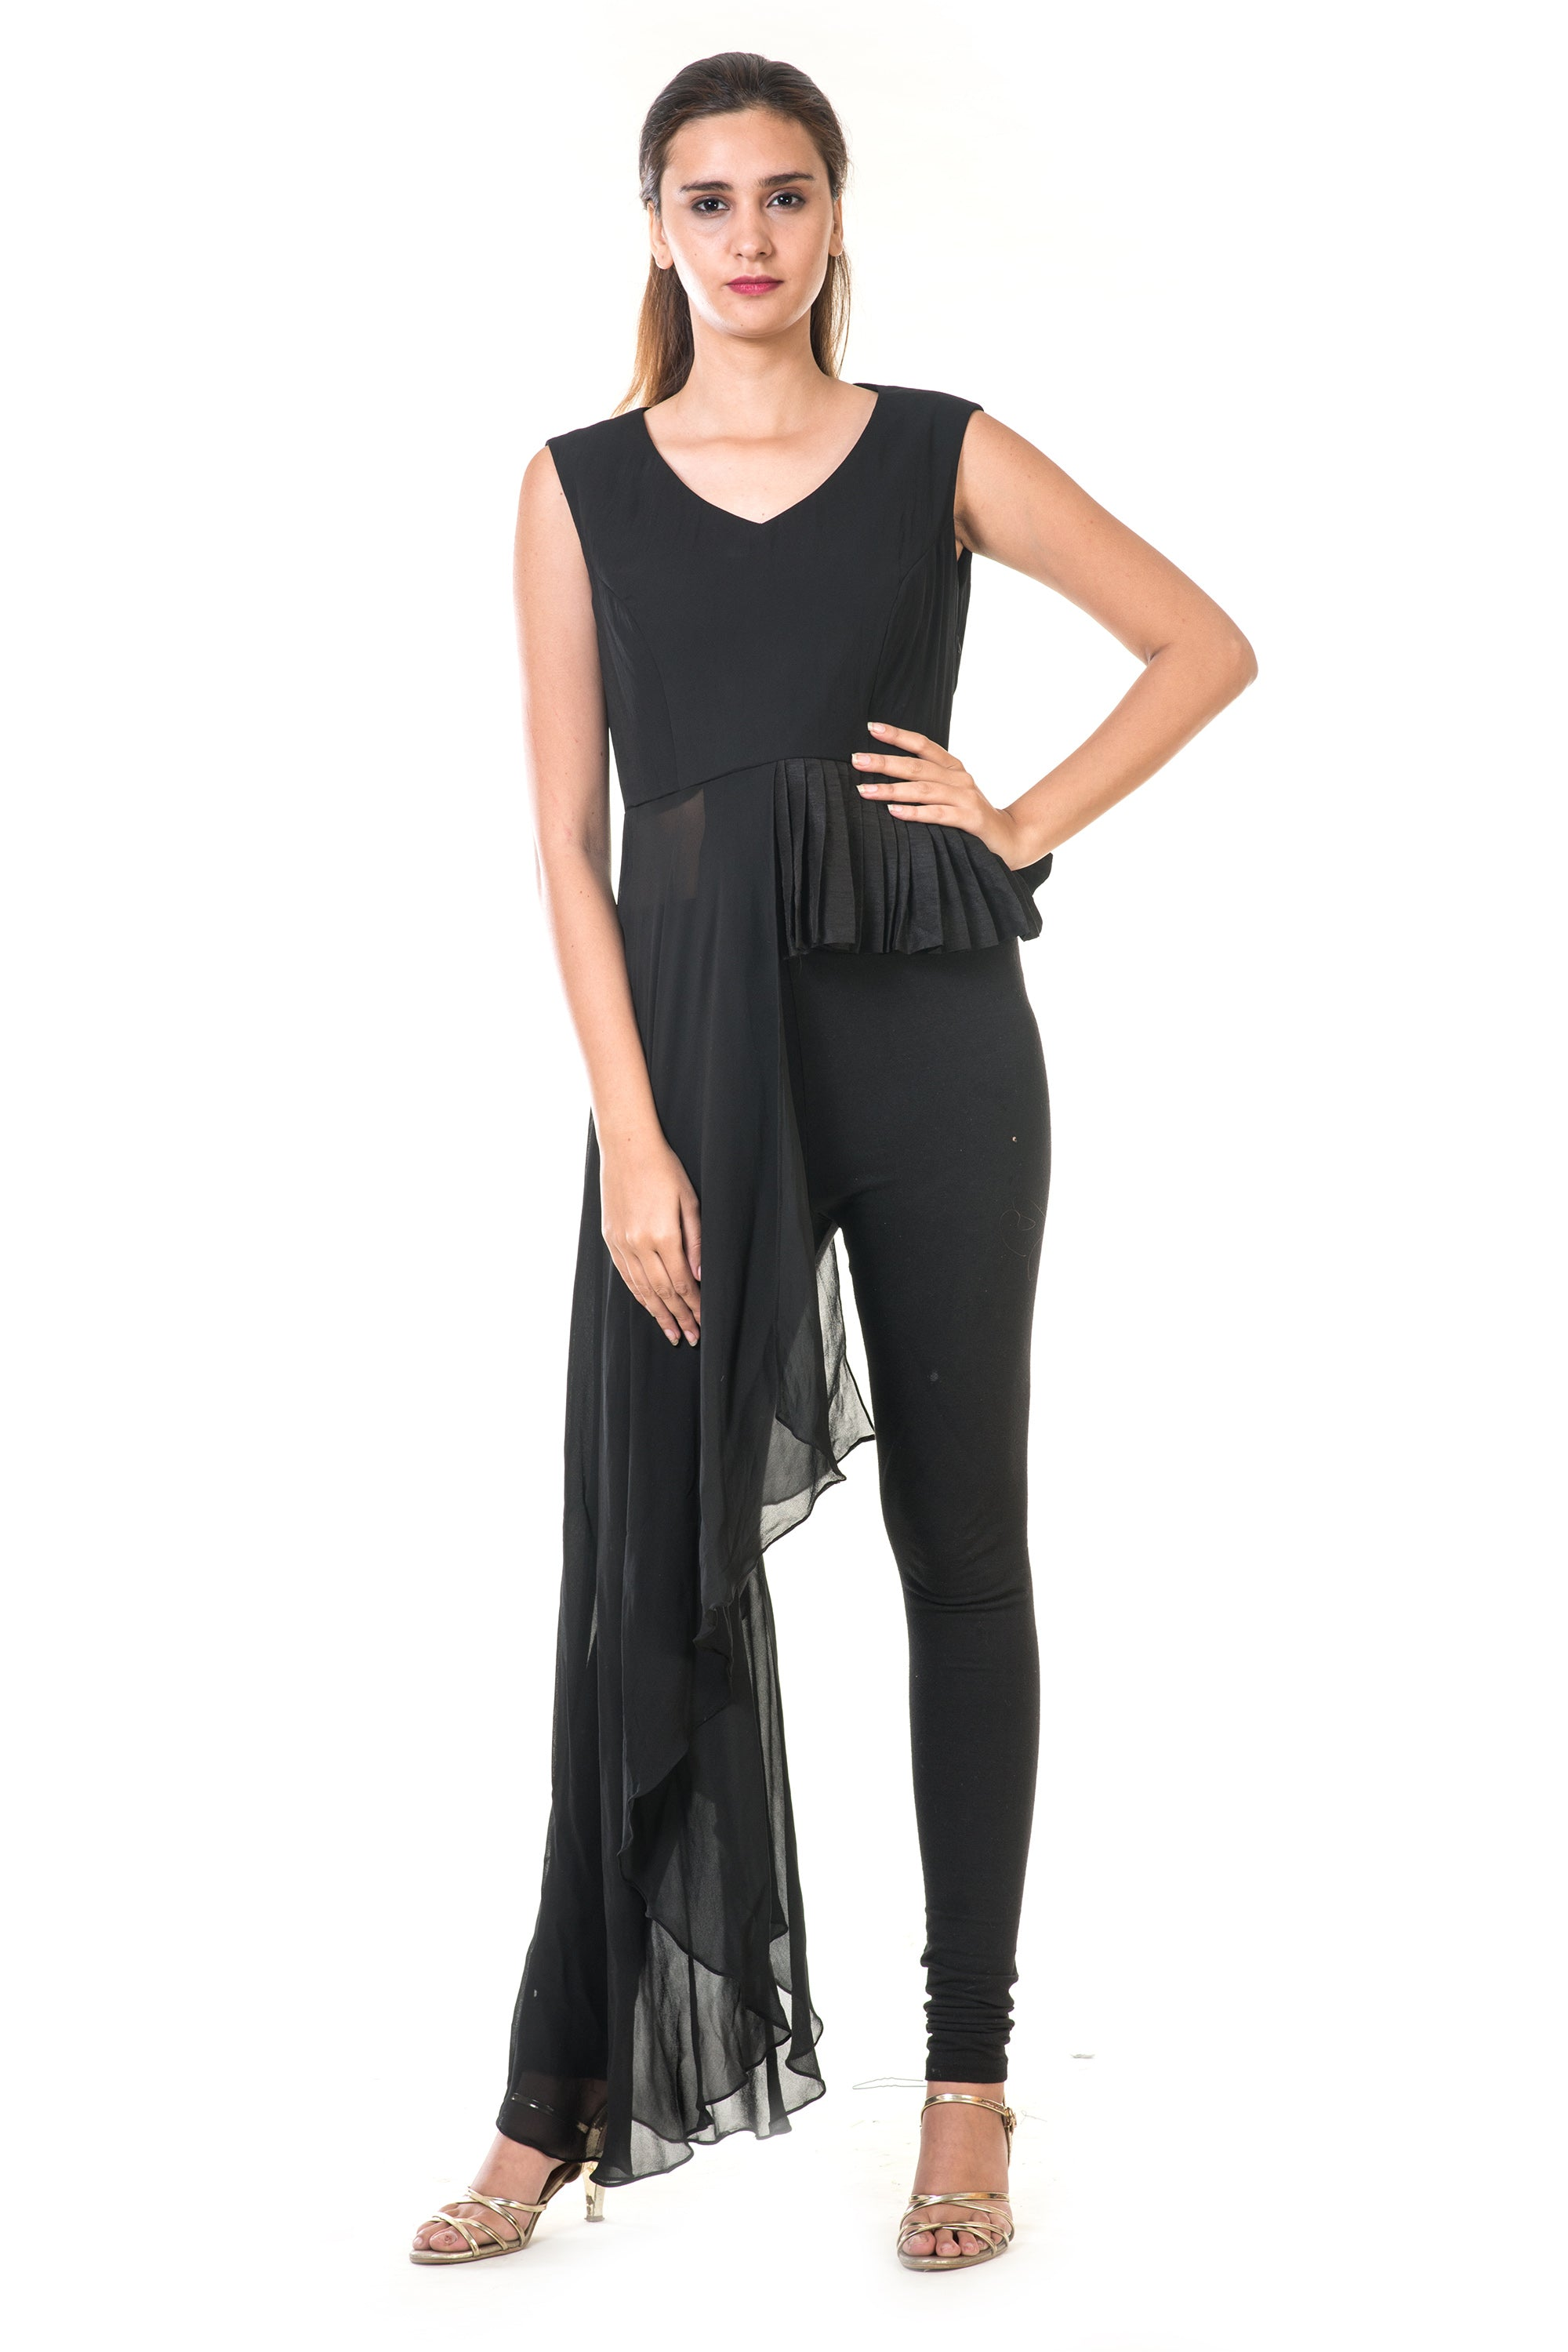 Black High Low Peplum Pleated Top FRONT